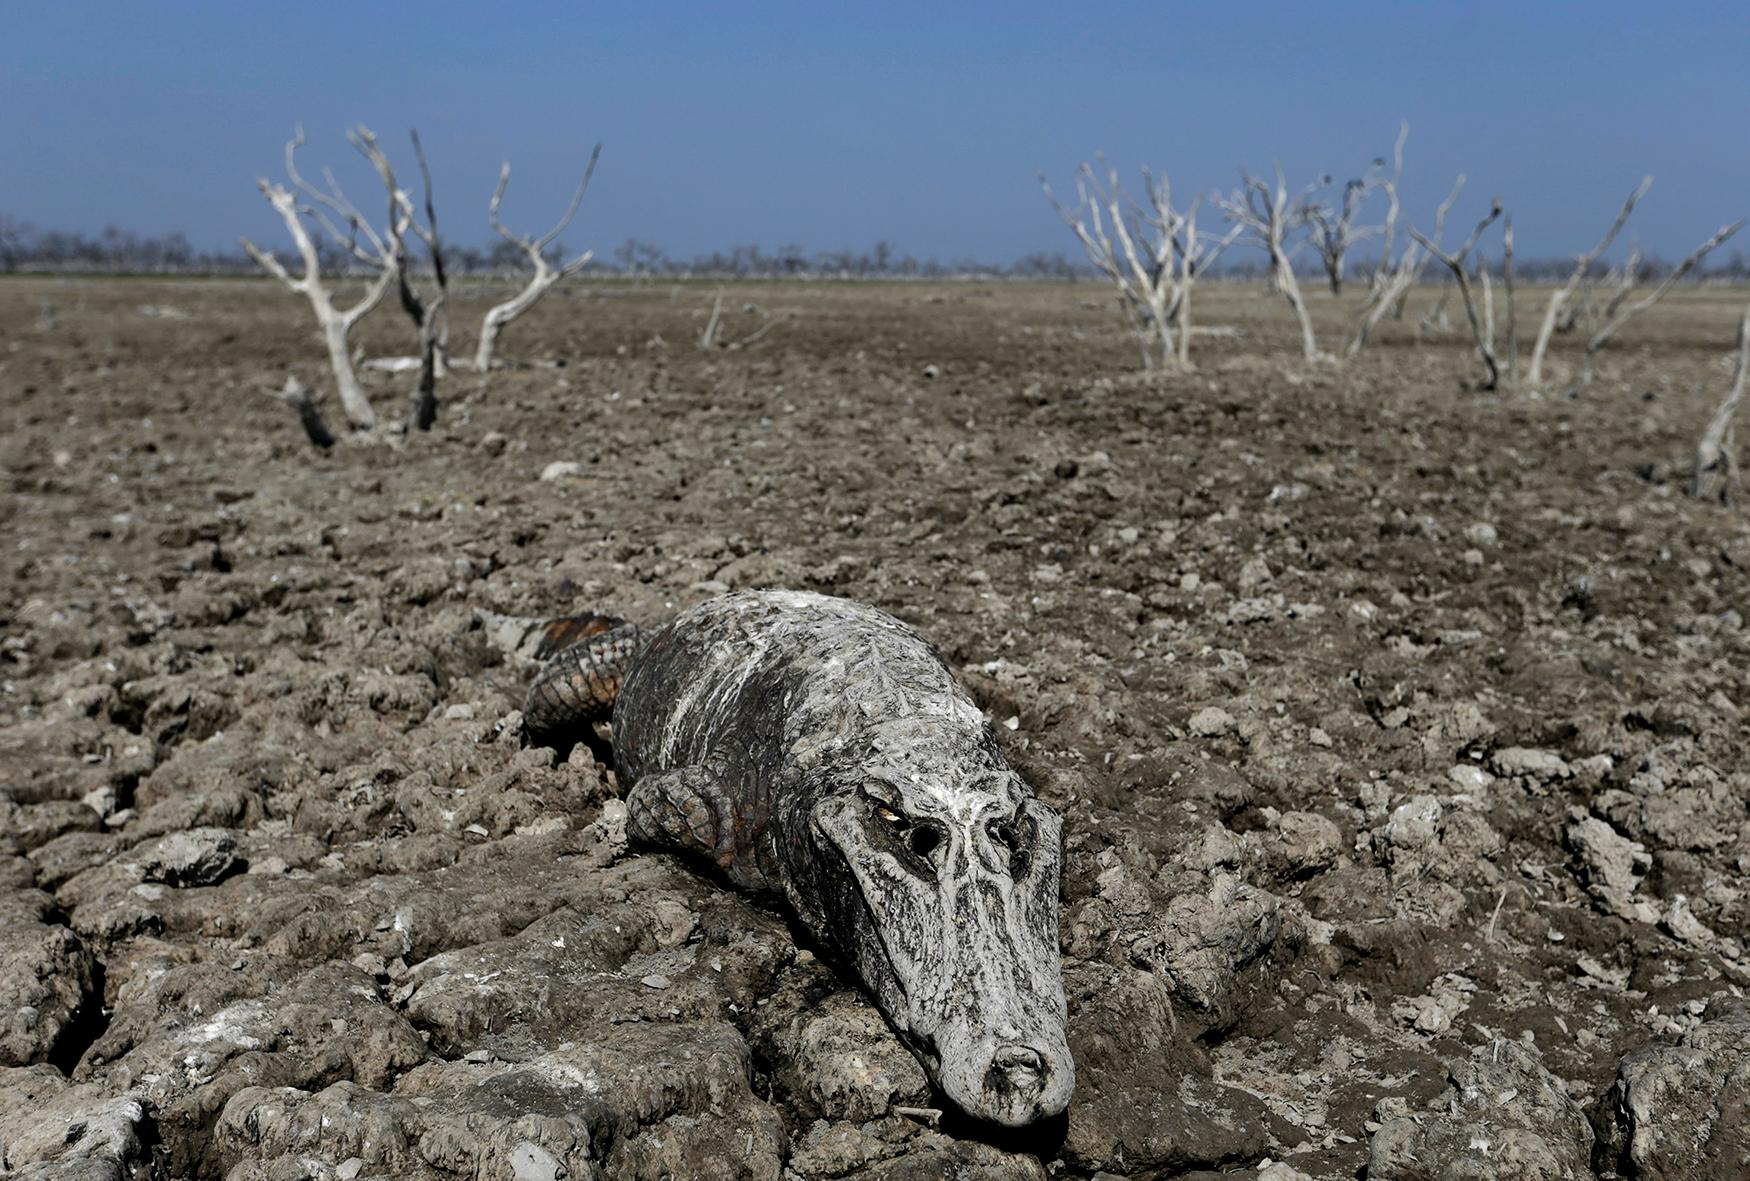 <p>The carcass of a yacare caiman lies in the dried-up river bed of the Pilcomayo river in Boqueron, Paraguay on Aug. 14, 2016. (Photo: Jorge Adorno/Reuters) </p>